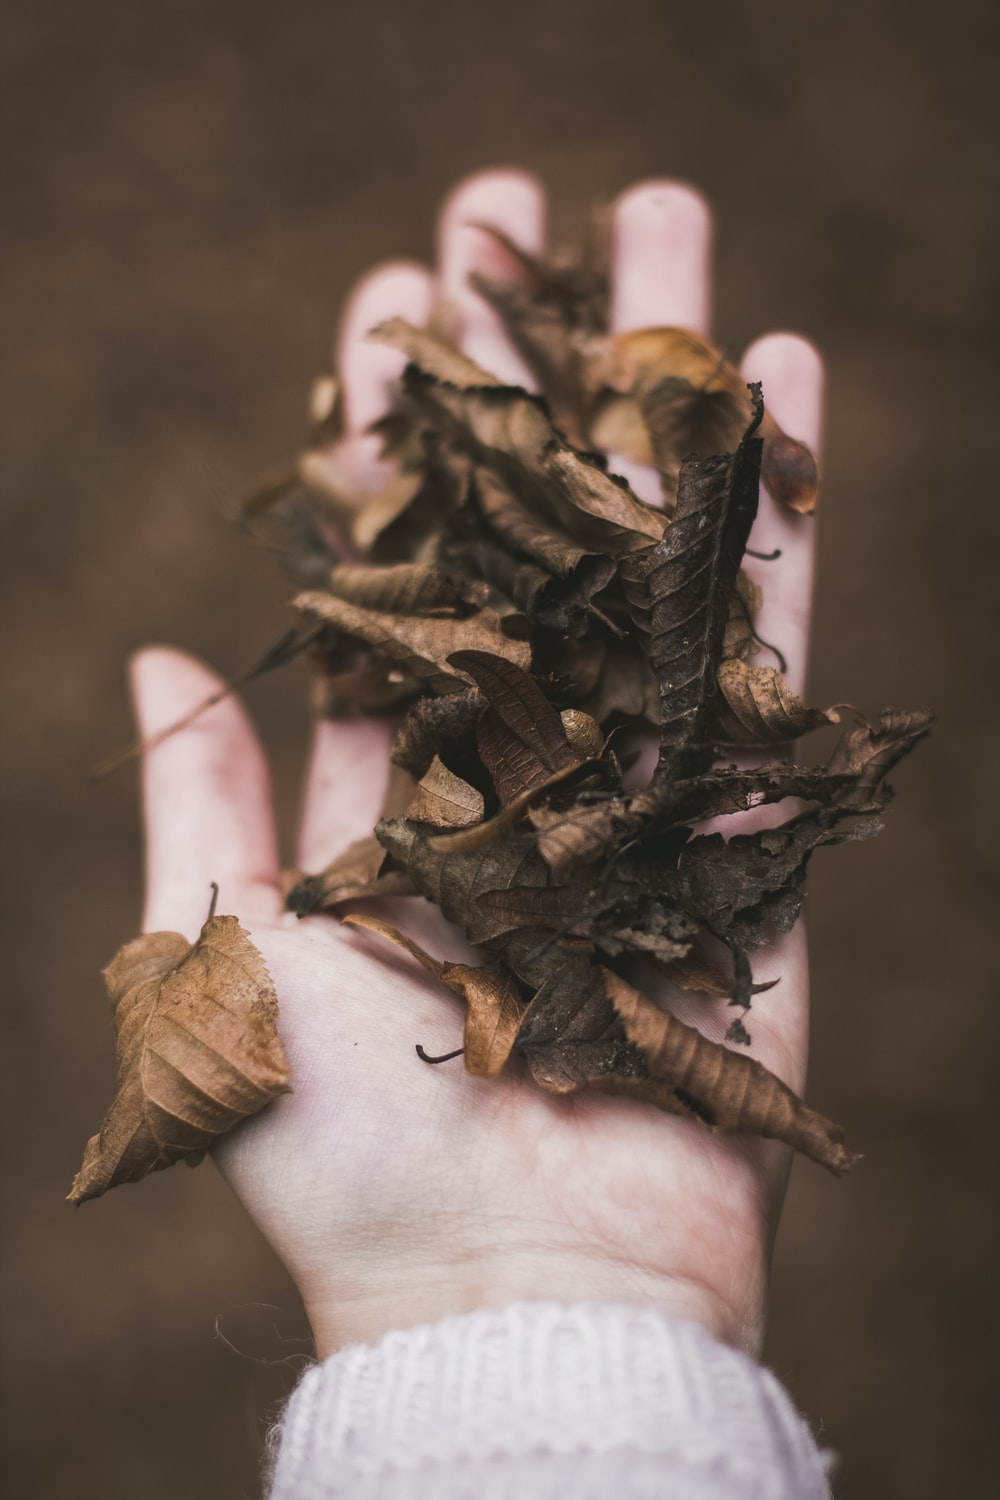 dried leaves in person's palm